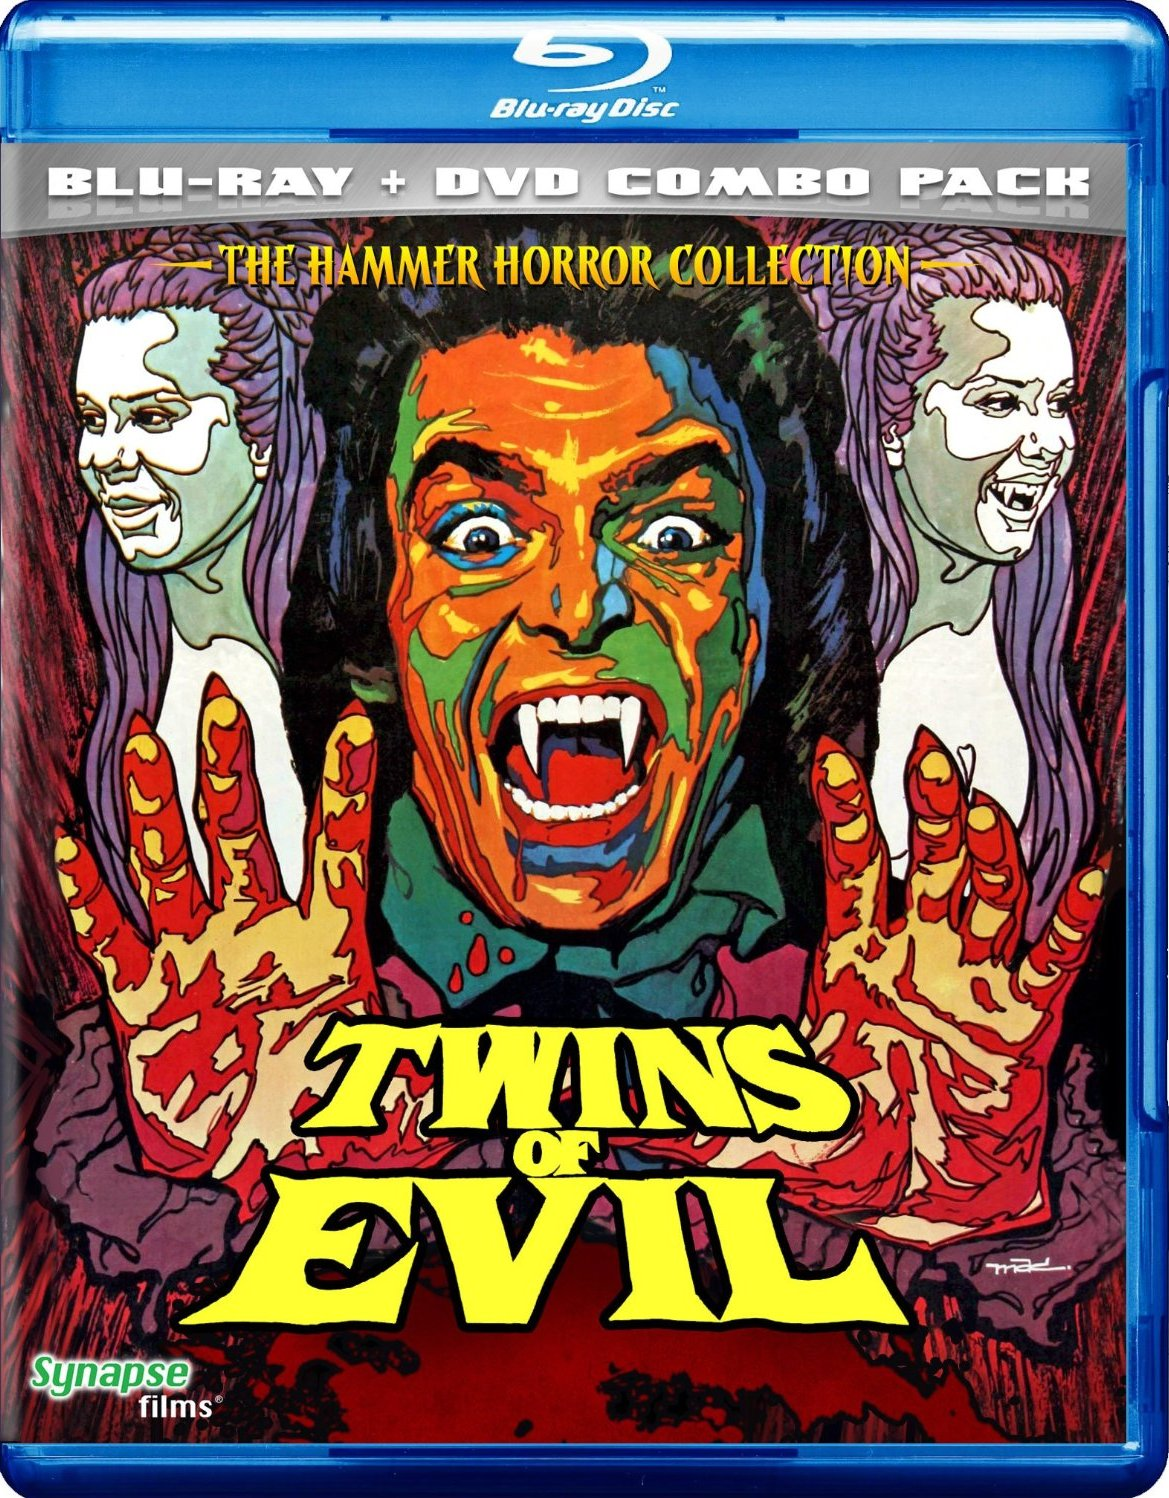 BRITISH CULT CLASSICS  Twins of Evil - Blu-Ray   DVD Dual Edition   Review afe40acce